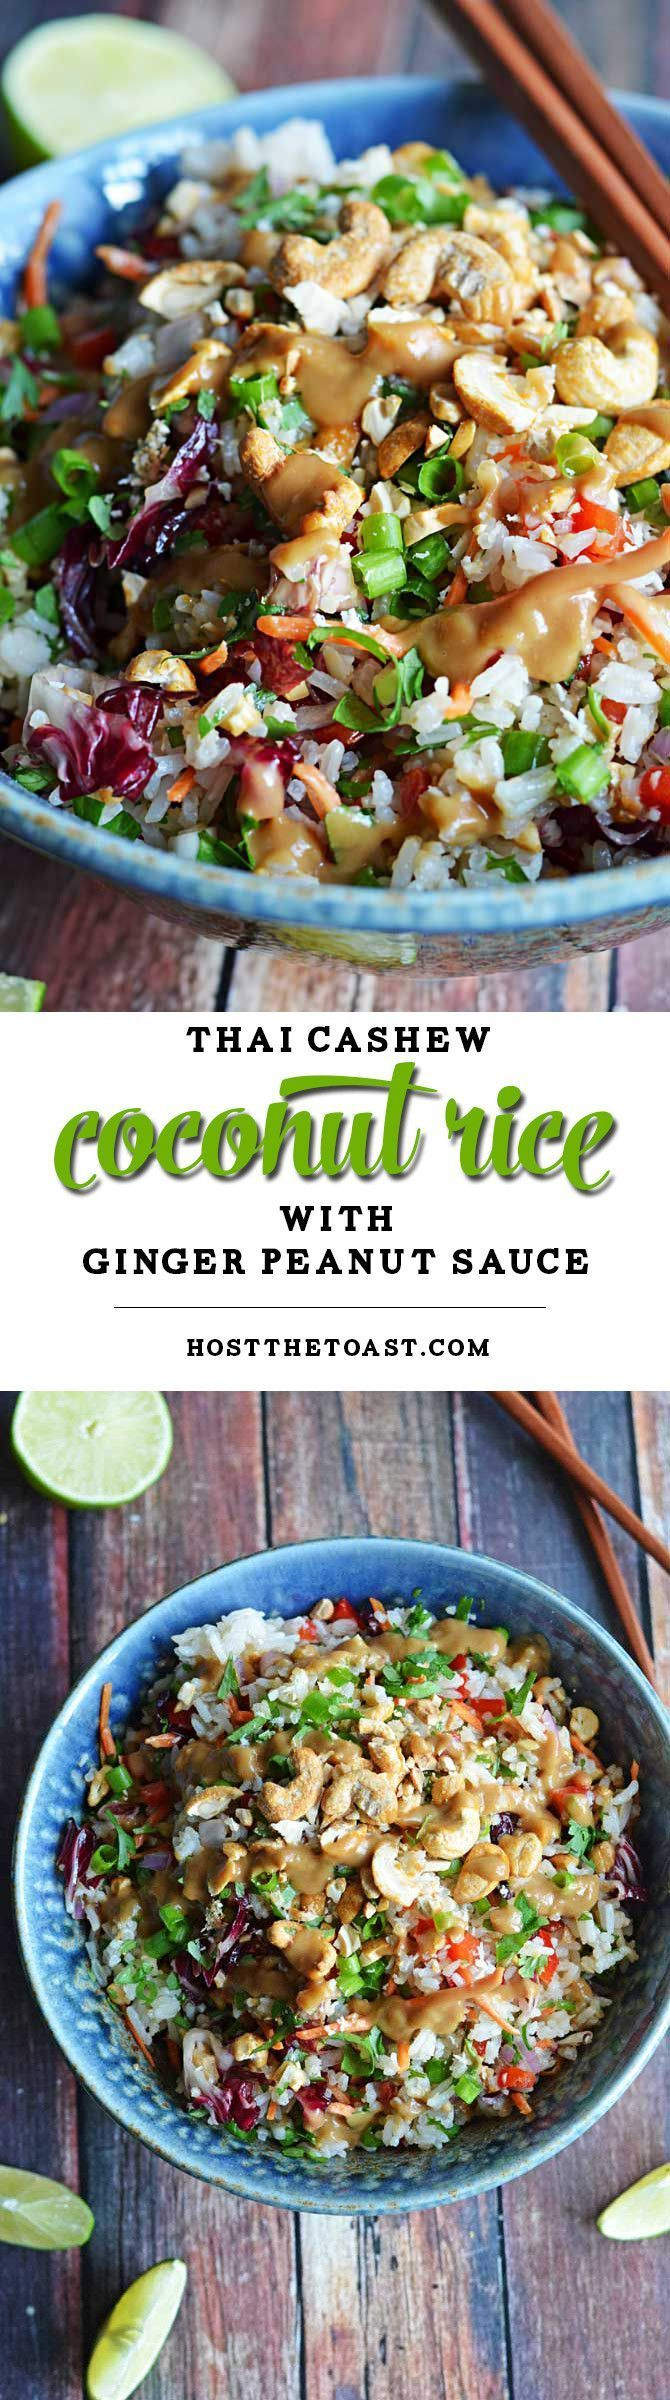 Thai Cashew Coconut Rice with Ginger Peanut Dressing. This rice salad is seriously addictive and always a huge hit at potlucks! Pasta salad is so overrated. Rice salad? I want it for every meal. | http://hostthetoast.com